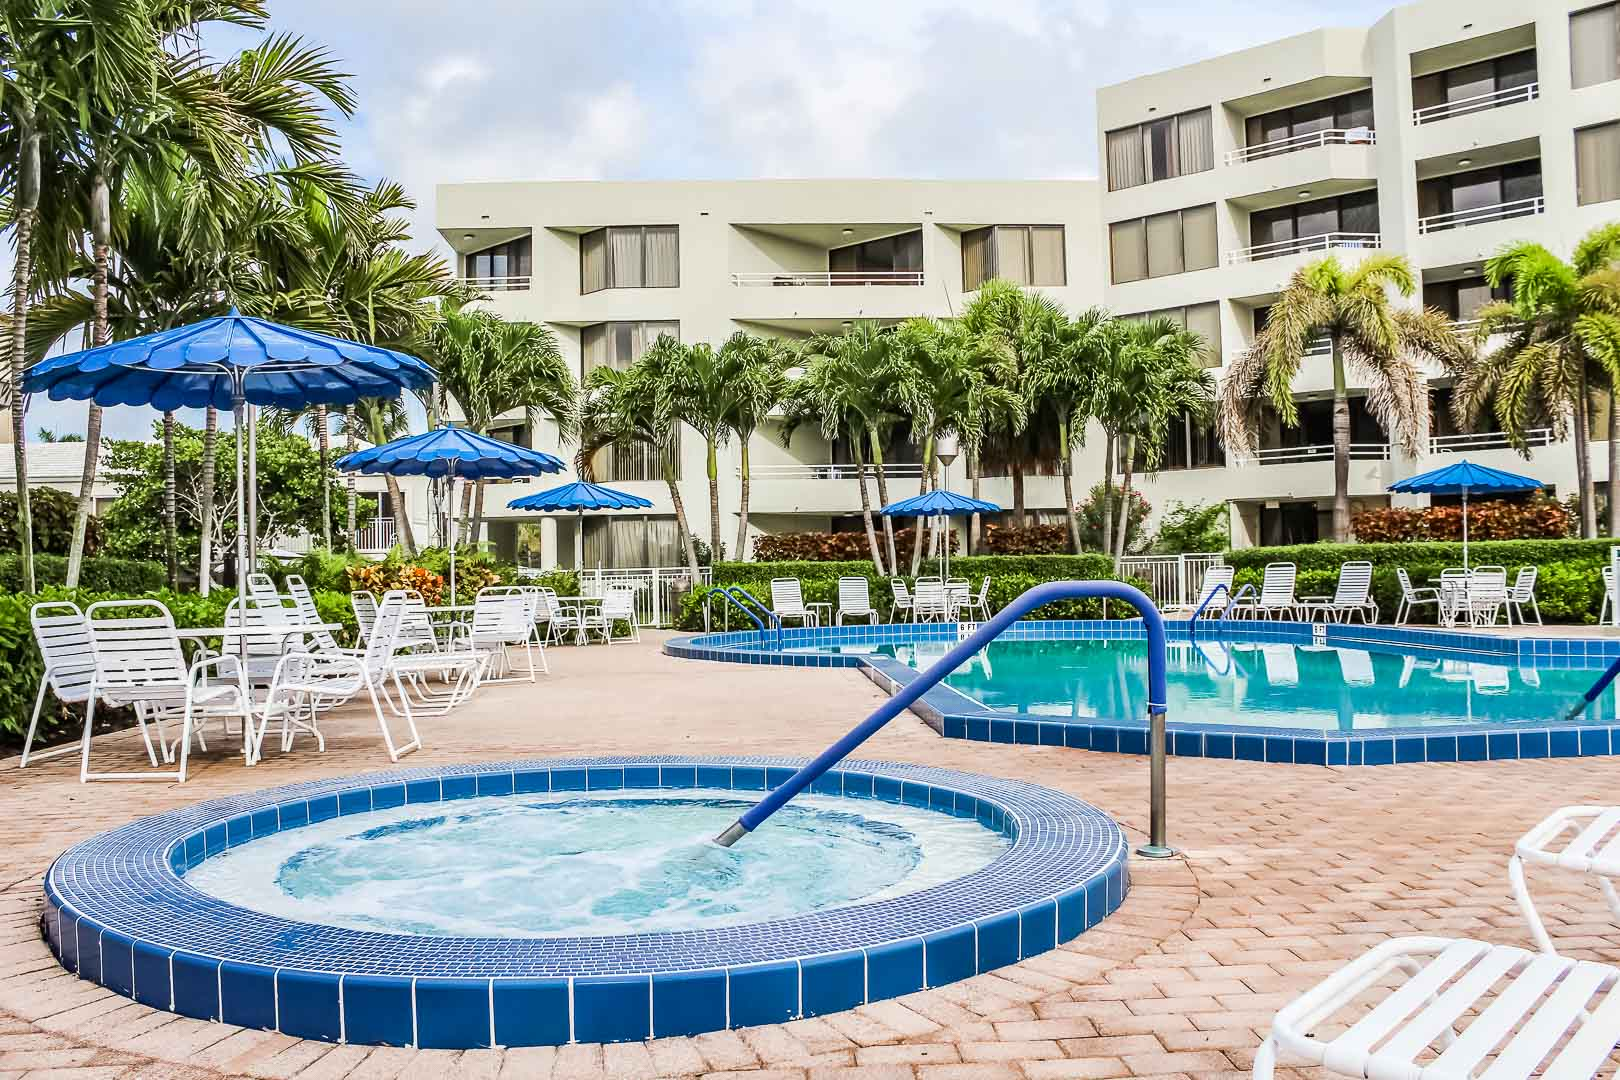 A relaxing Pool and Jacuzzi at VRI's Berkshire by the Sea in Florida.